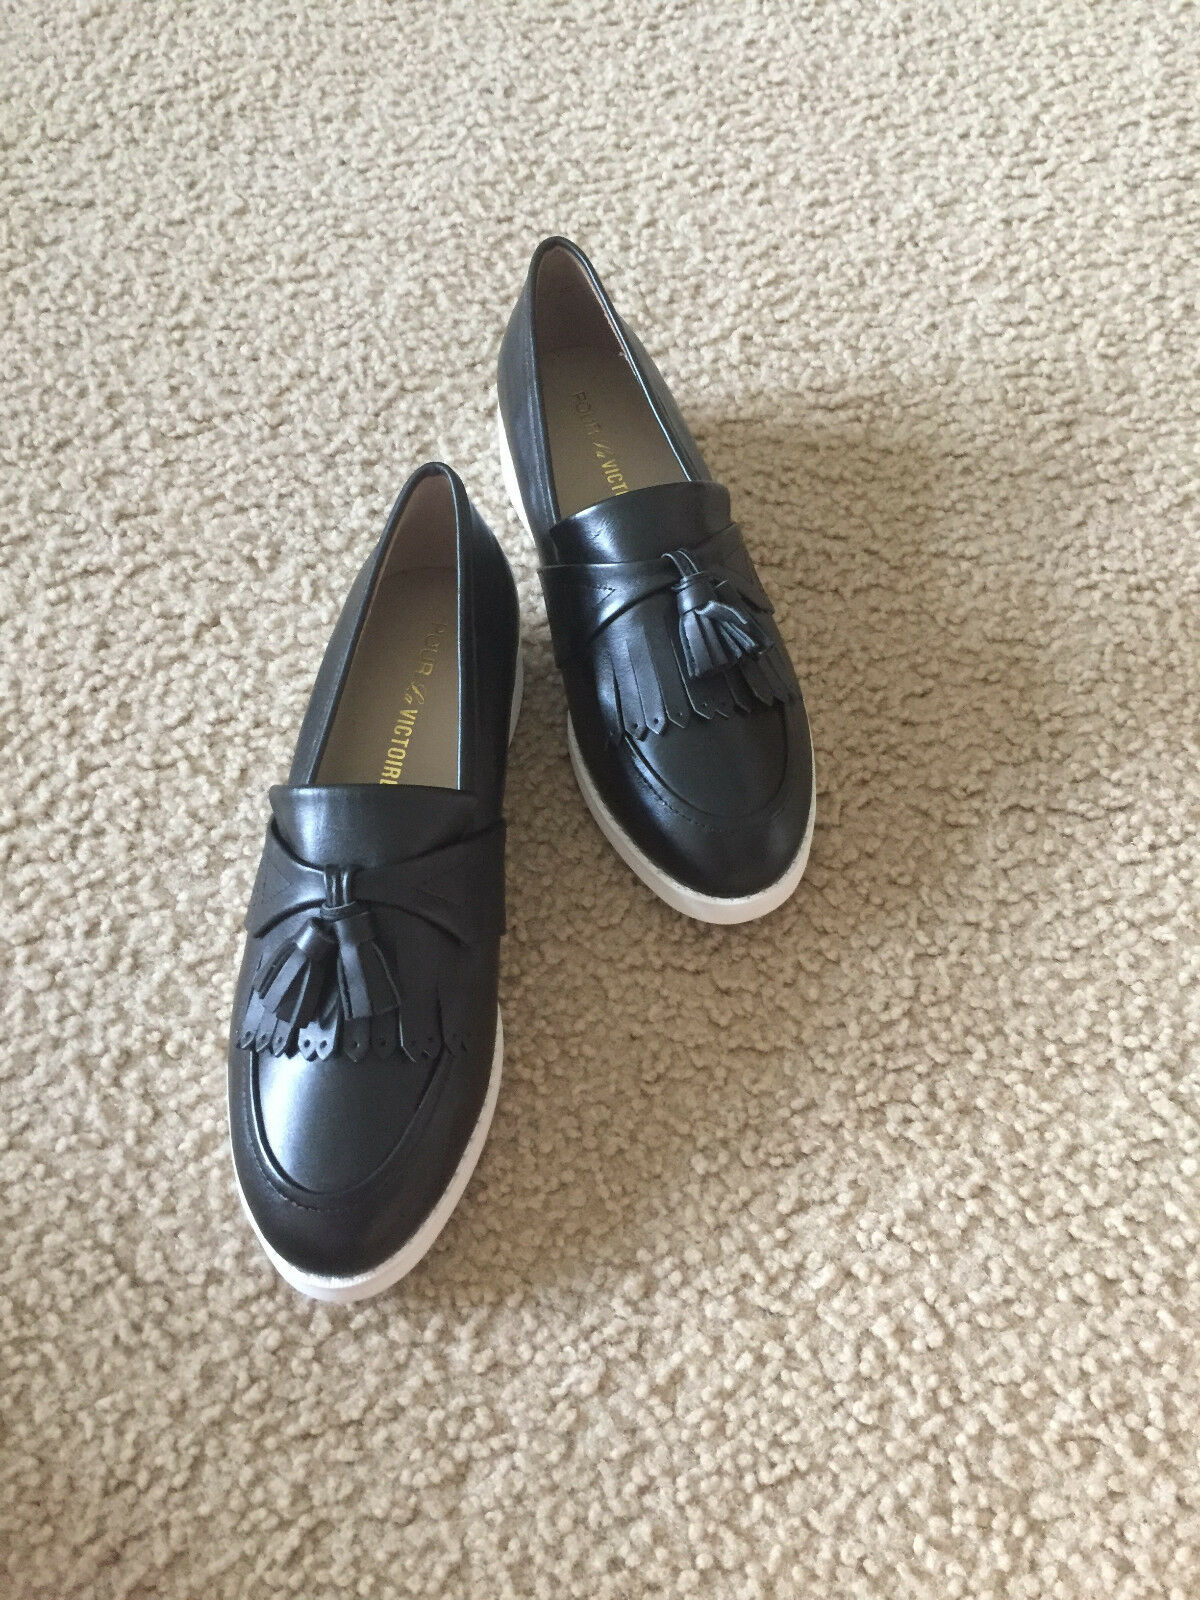 NIB Smoking Pour La Victoire Rissa BLACK CALF Smoking NIB Loafer 5.5 7.5 tassel 3fc1b9